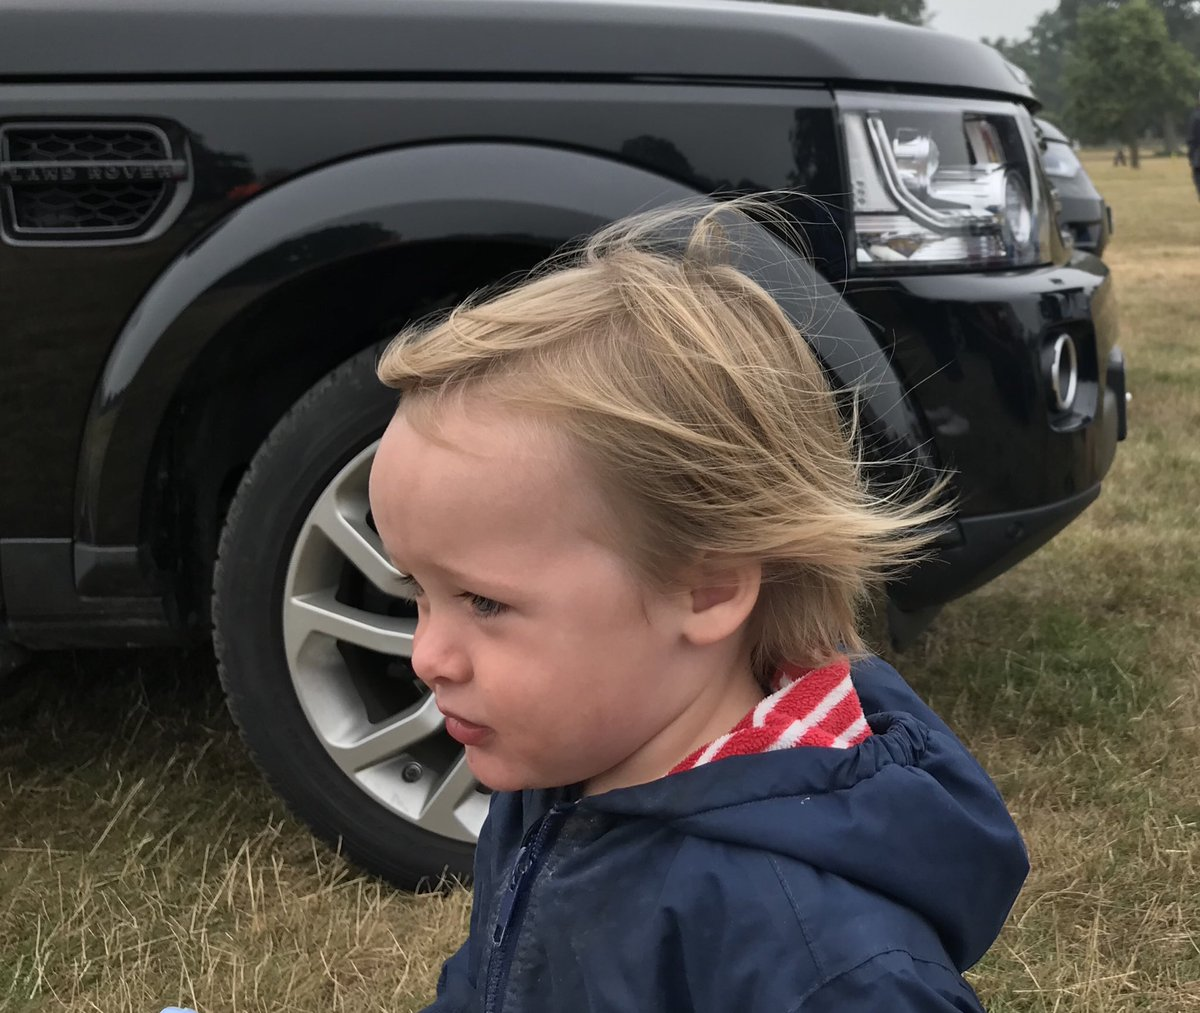 Have just realised my son has Donald Trump's hair